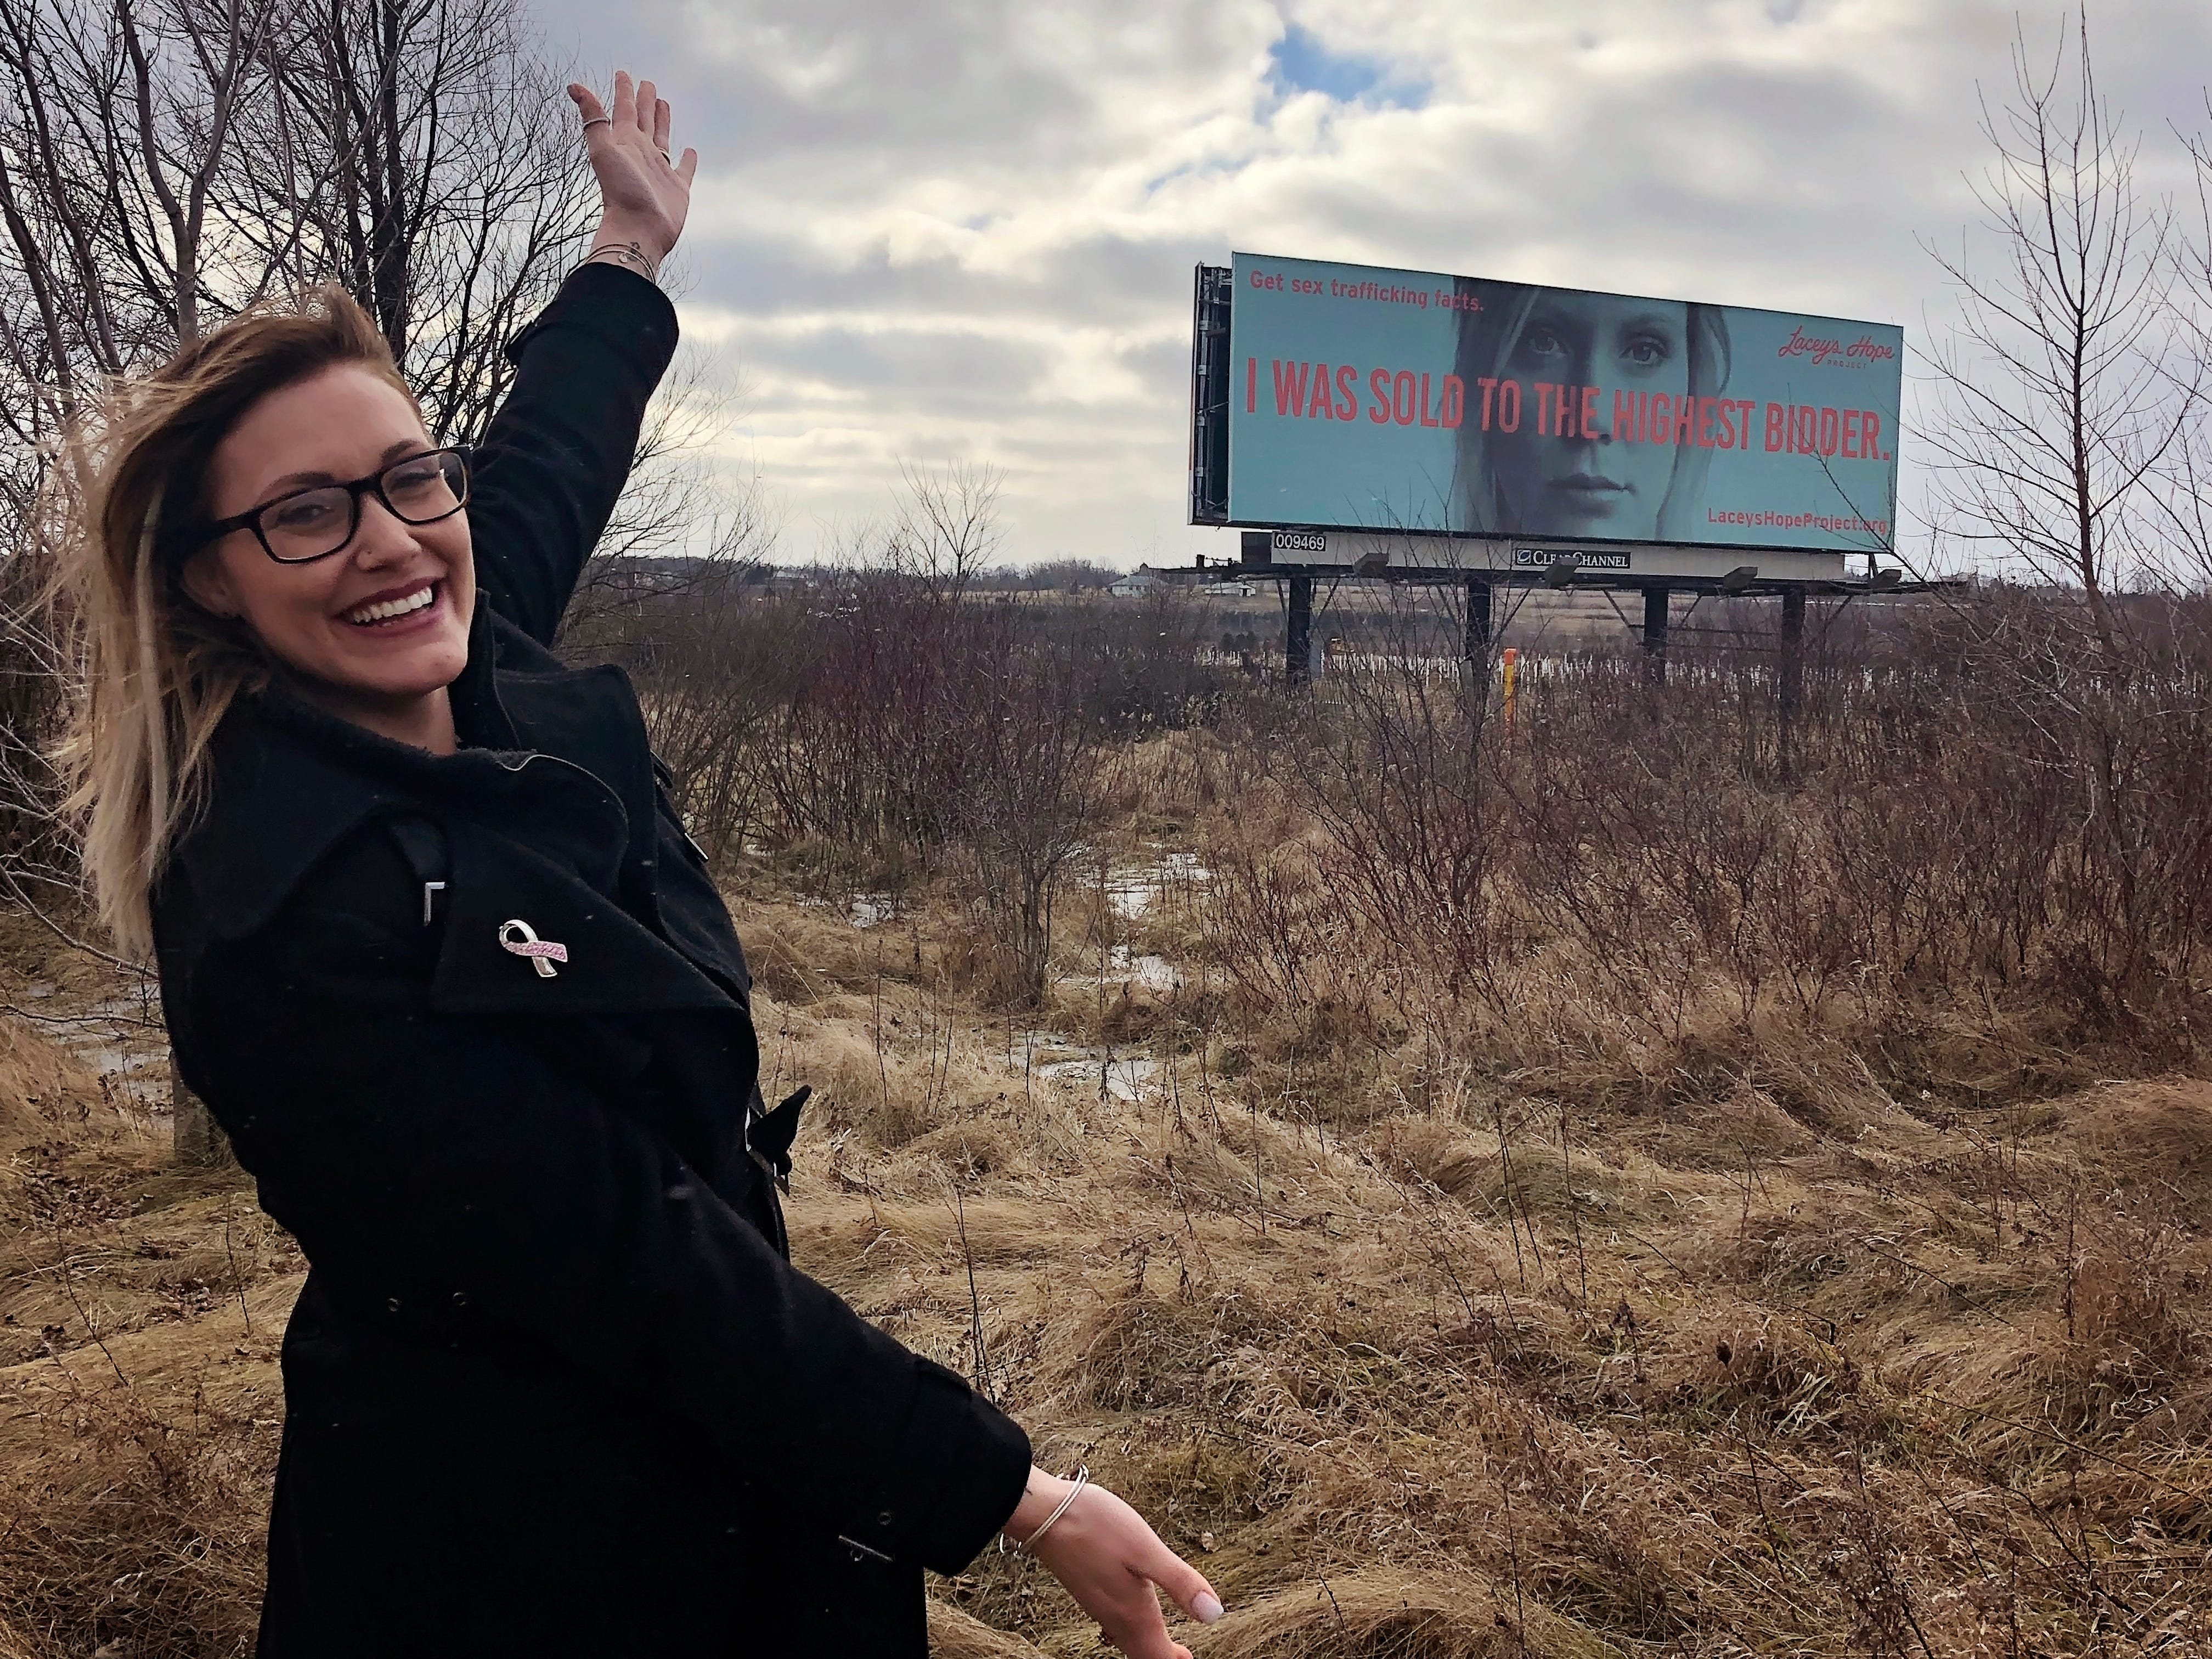 """Emmy Meyers survived sex trafficking. Here she stands by a billboard featuring a poster from the campaign """"Your Suburbs Aren't Safe."""" The campaign is part of the mission of Lacey's Hope Project, a nonprofit Meyers founded to raise awareness about sex trafficking."""